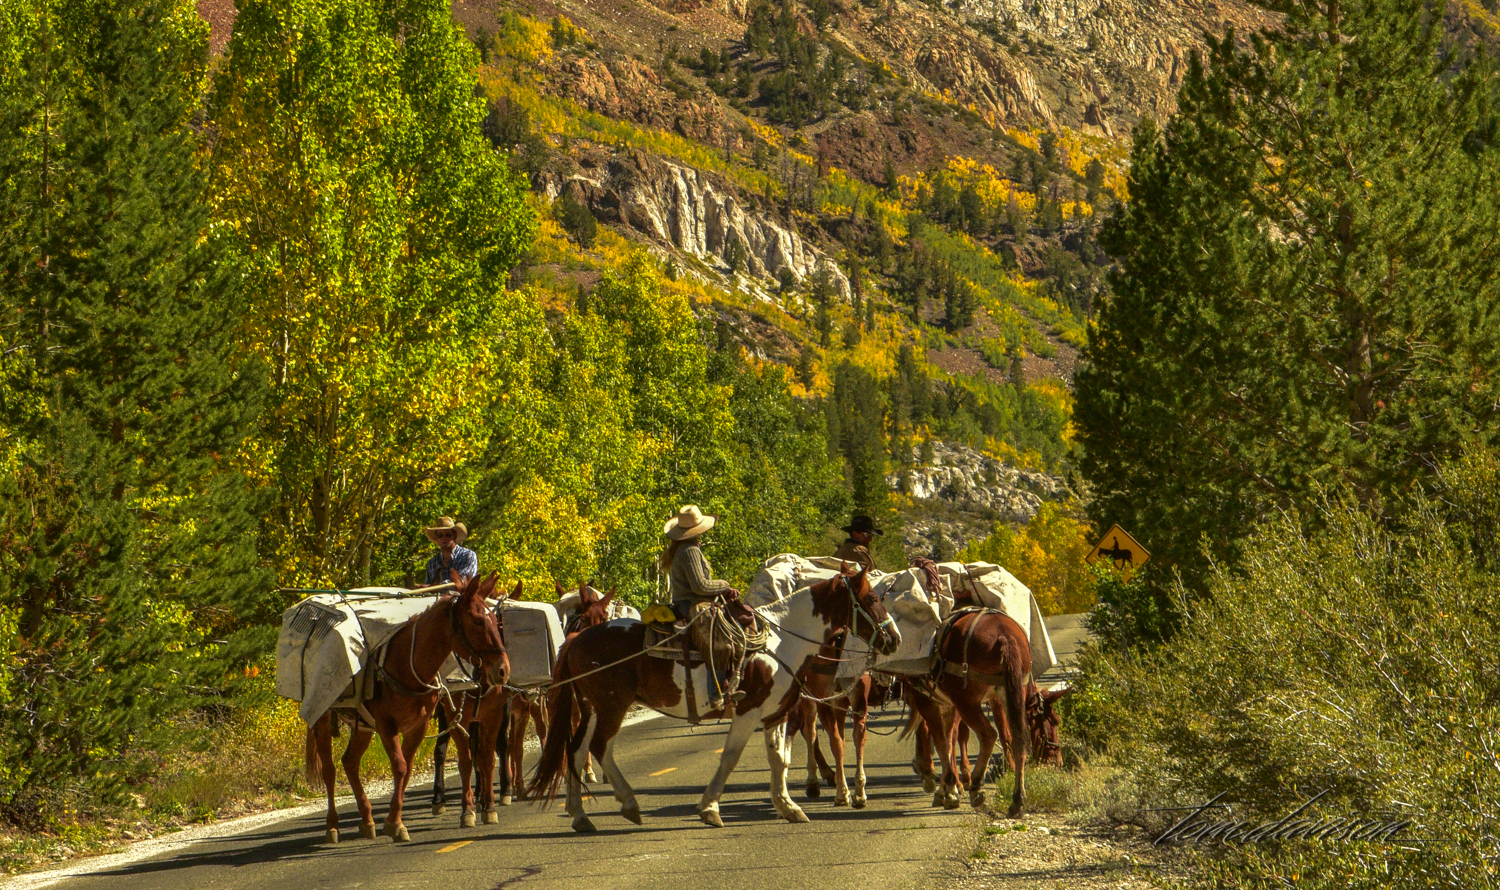 Mules and pack trains are a thriving business in the area. Cars gladly share the road.